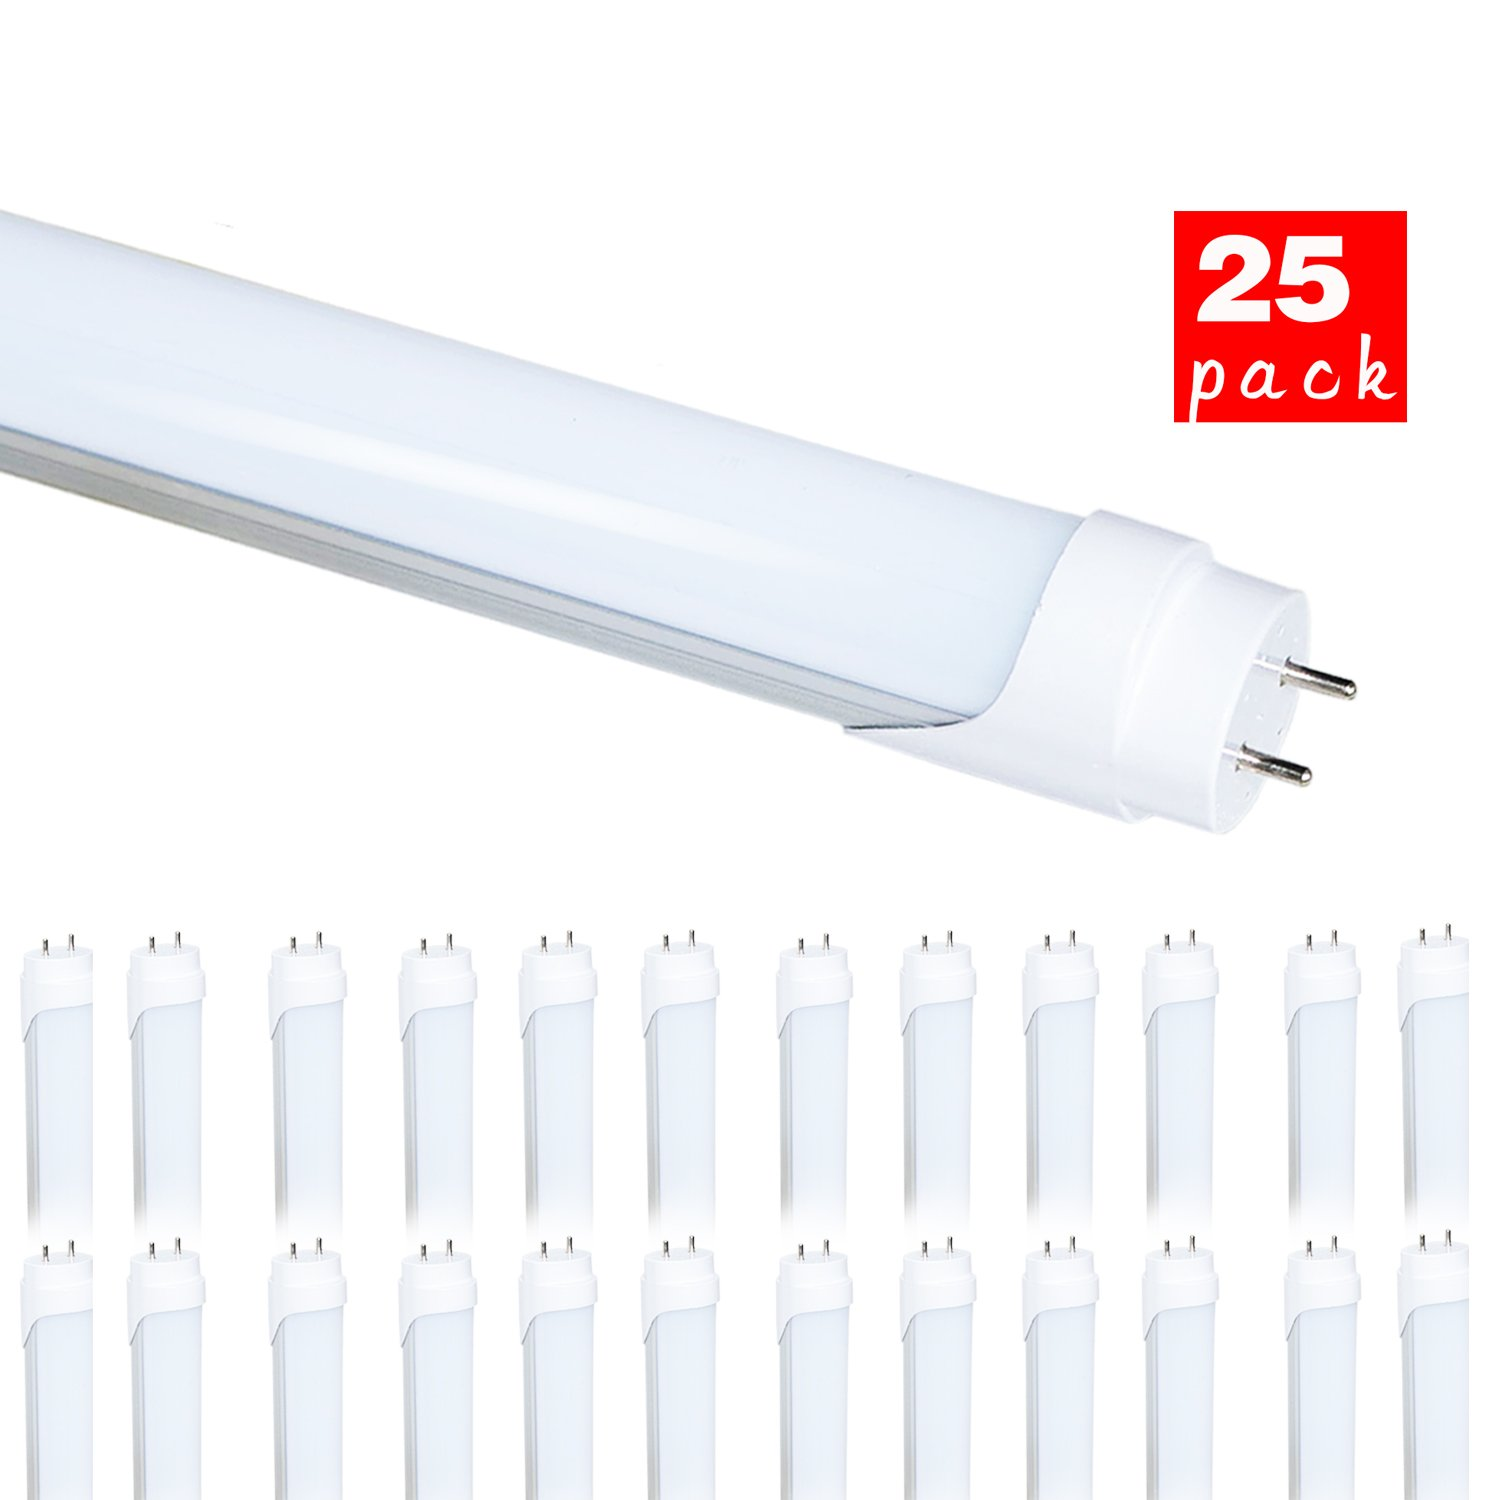 25 Pack of WYZM 20Watt T8 LED Bulbs 4 Foot,40W Fluorescent Tube Replacement,5500K Daylight White,Double End Power (25PACK 4FT 5500K)